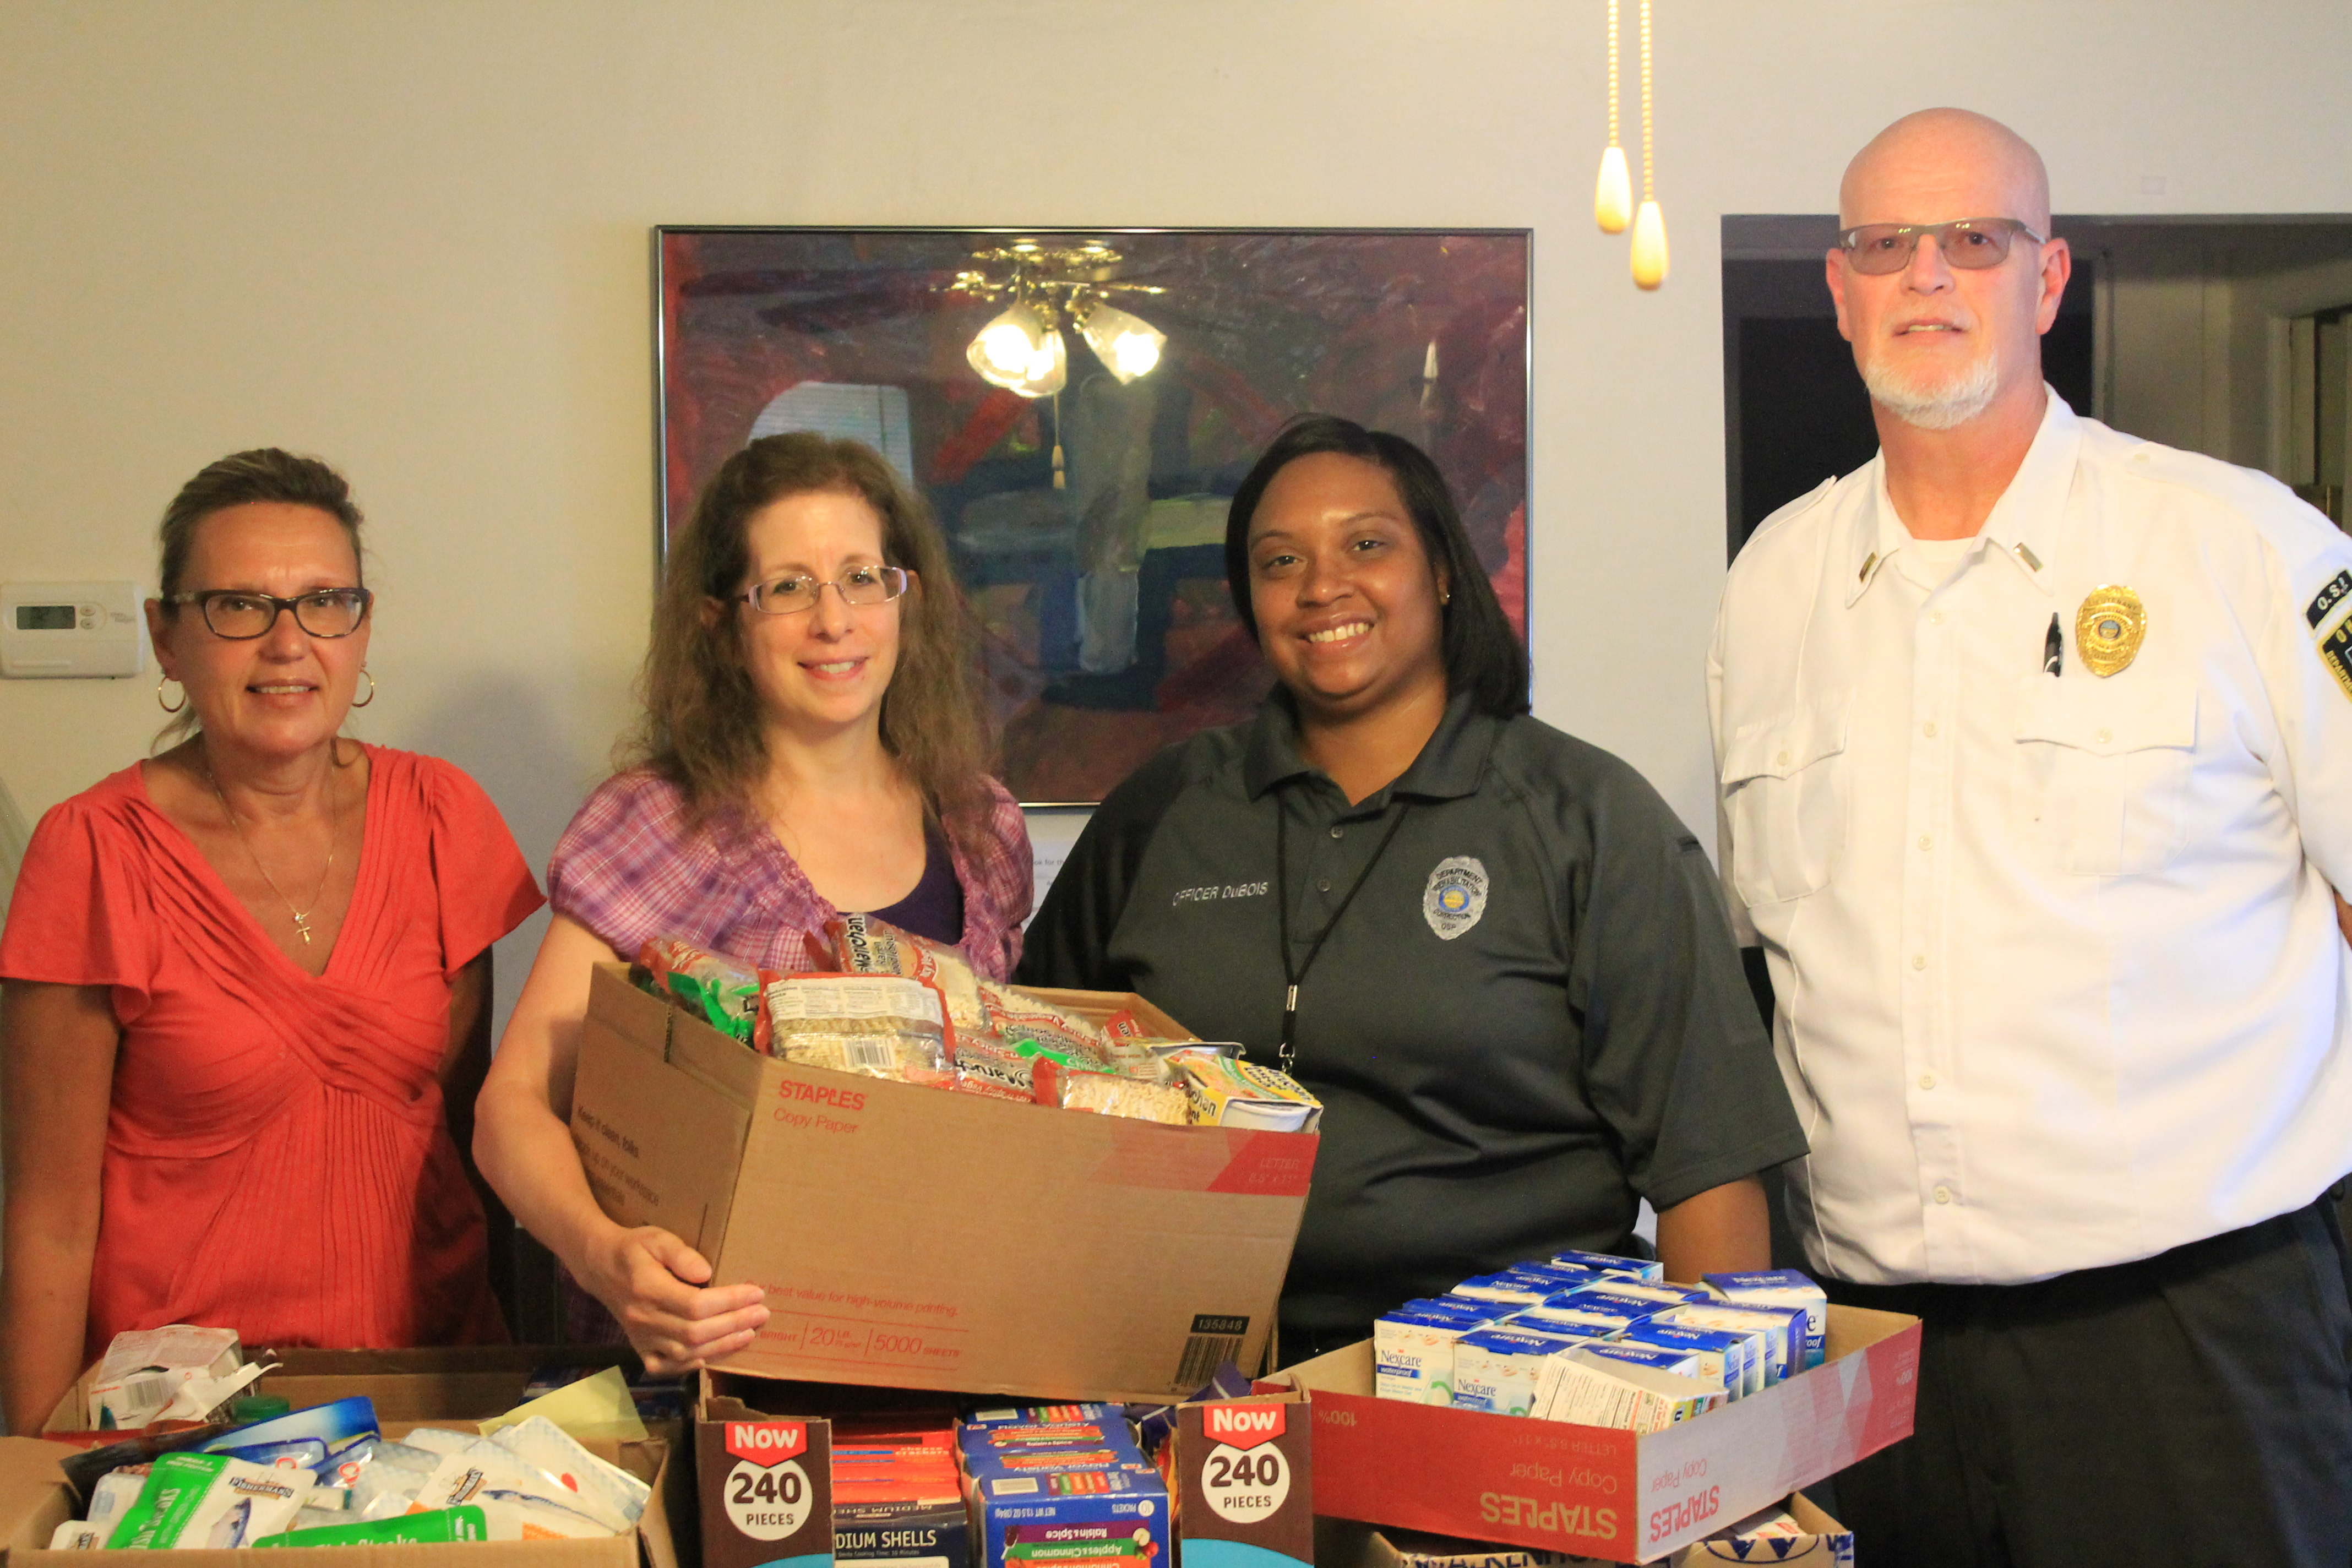 OSP Donates to Ursuline Sisters Ministry